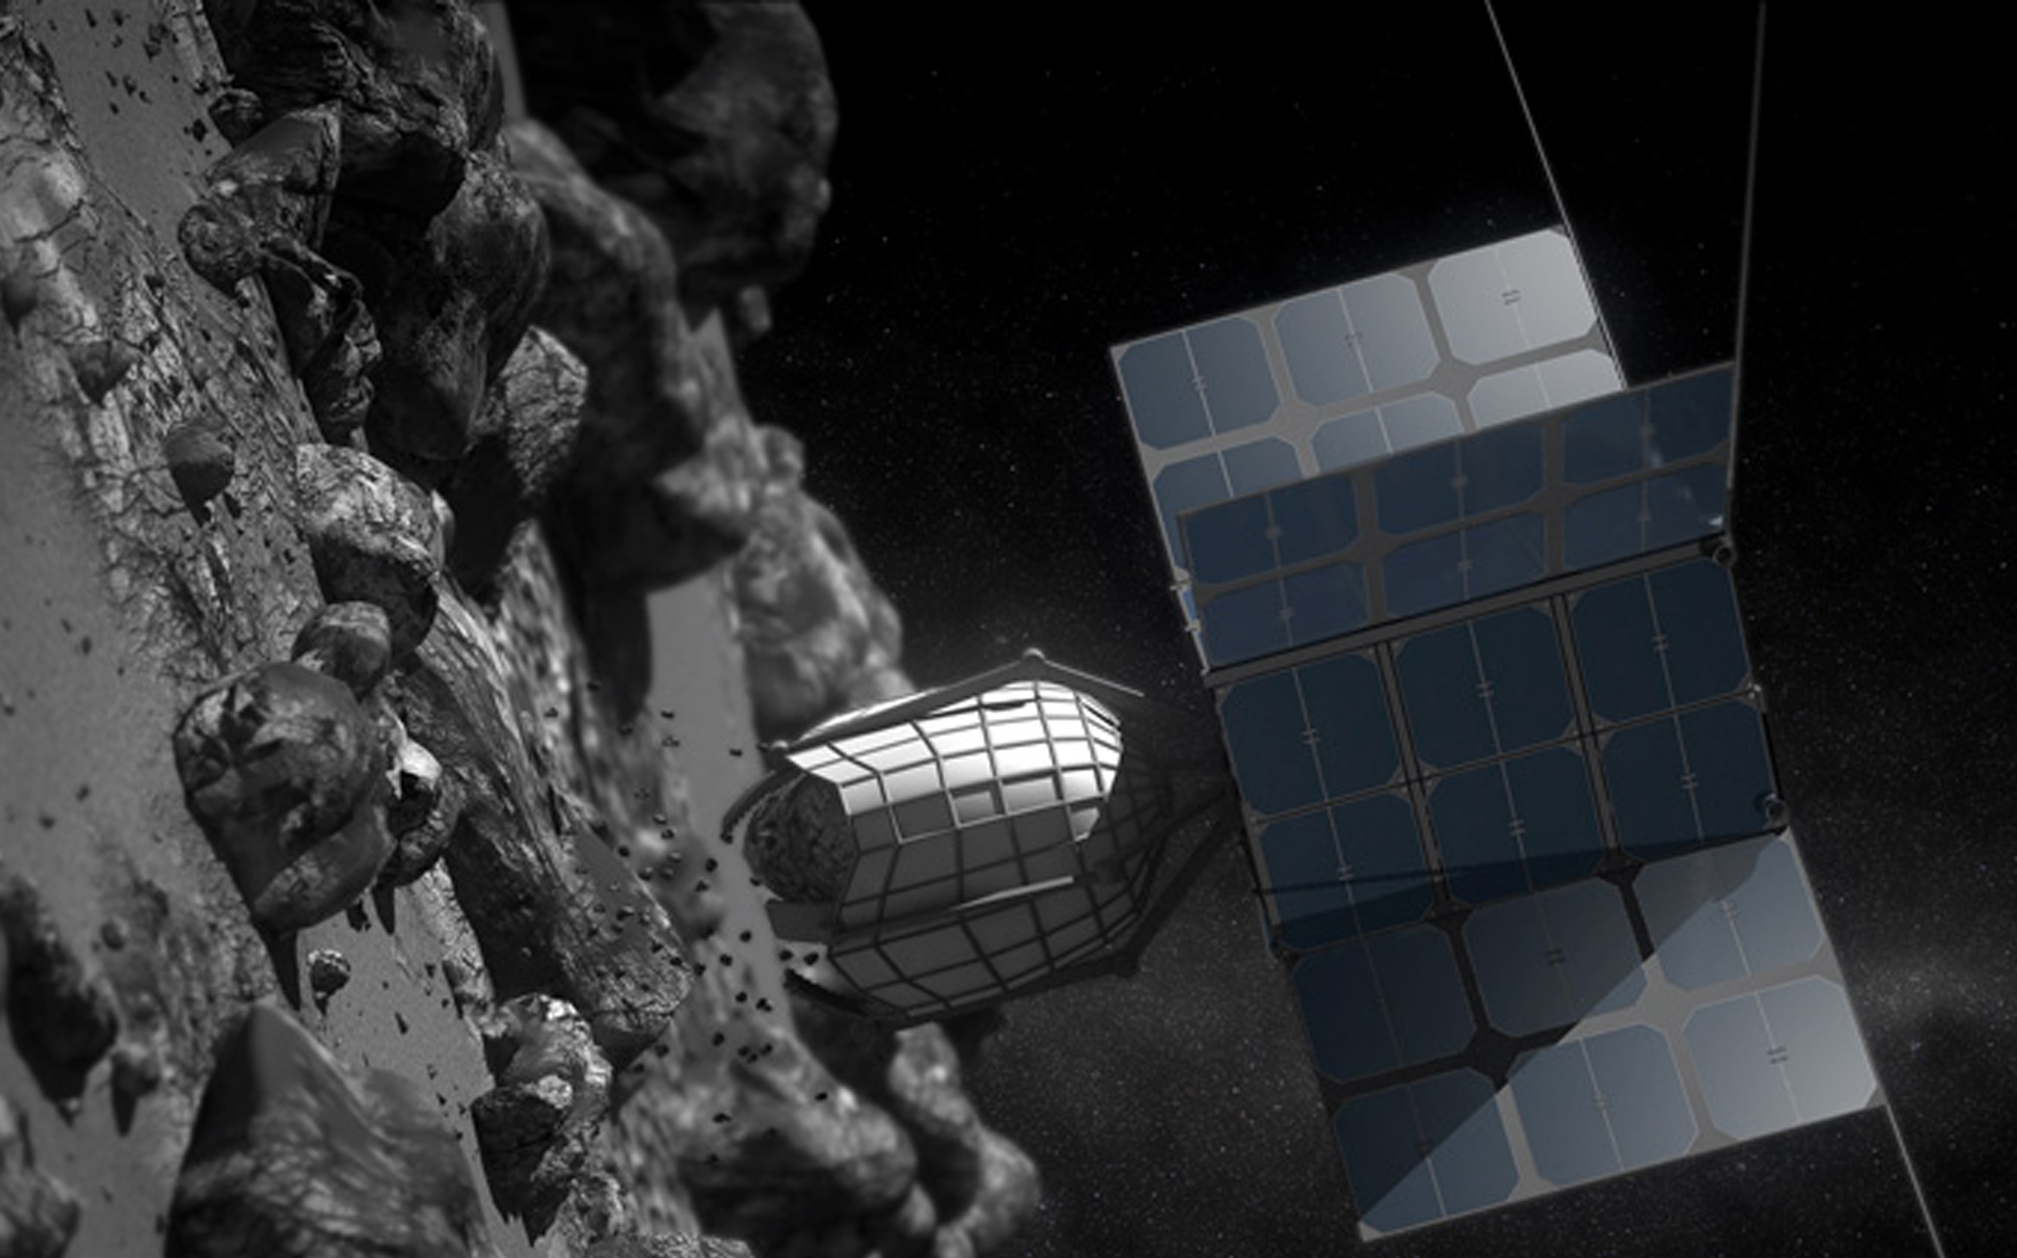 space asteroid mining prospector